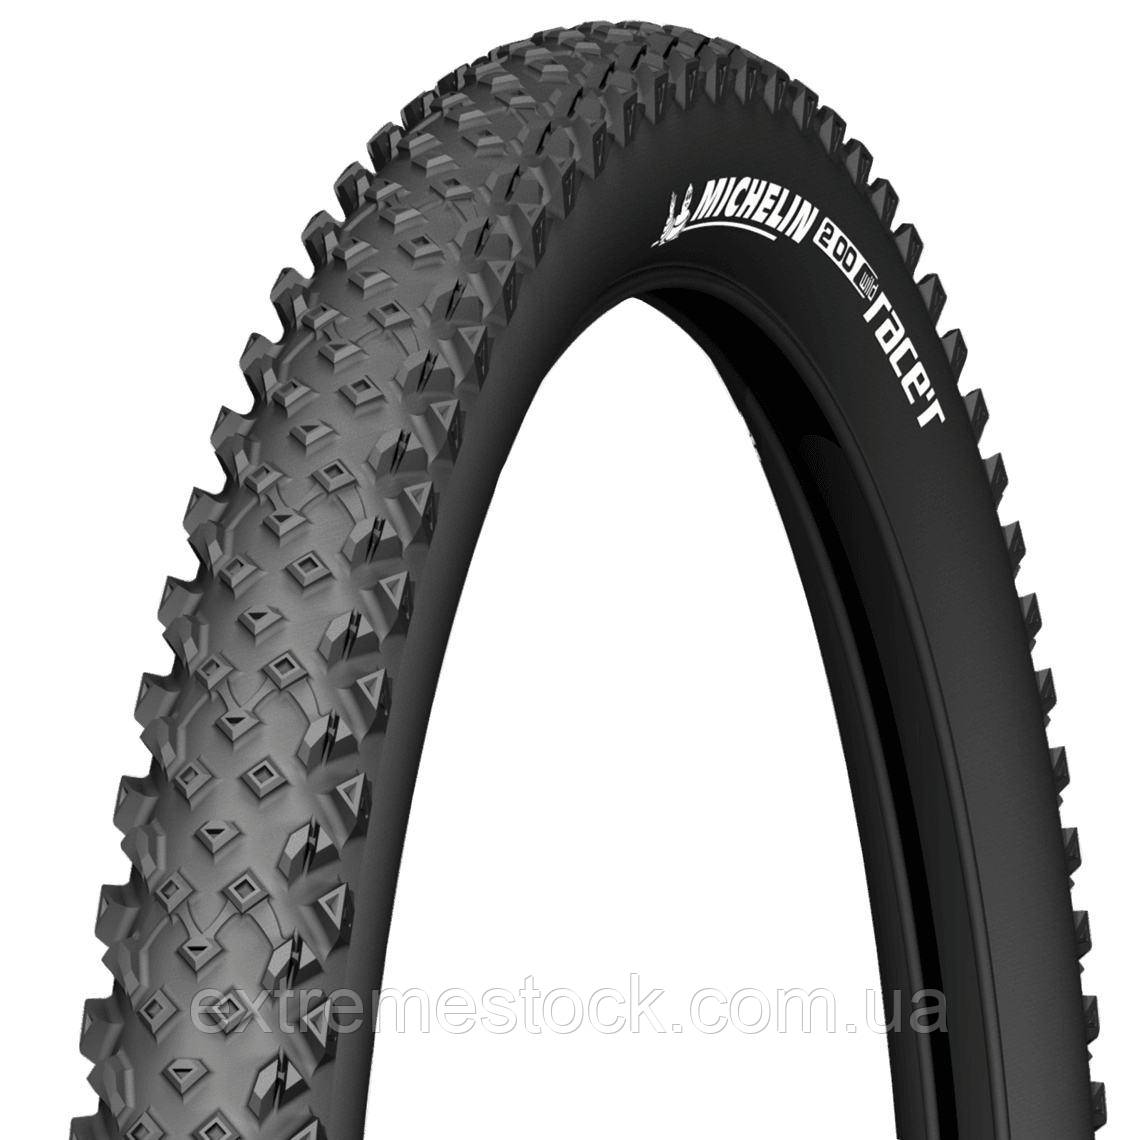 Покрышка мтб Michelin Wild Race'R Perfomance, 29x2.25, Tubeless Ready